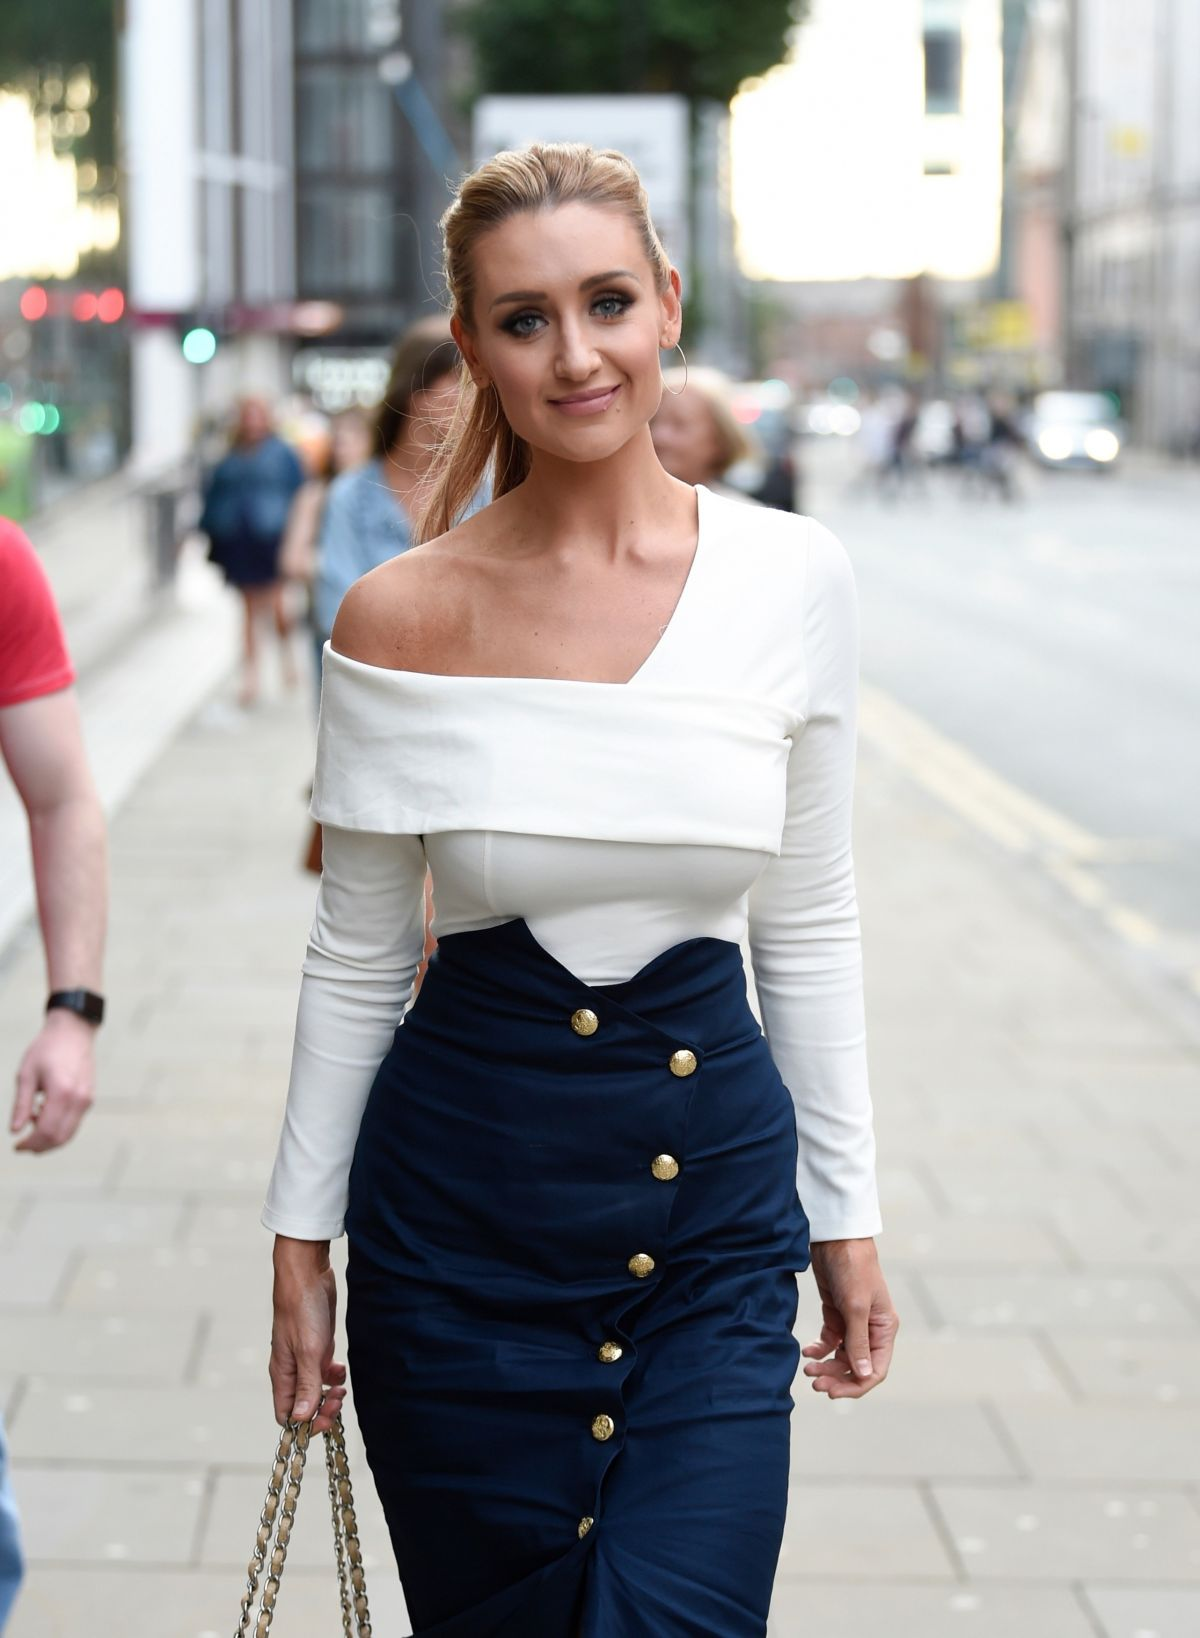 Images Catherine Tyldesley nudes (89 foto and video), Topless, Sideboobs, Feet, legs 2018